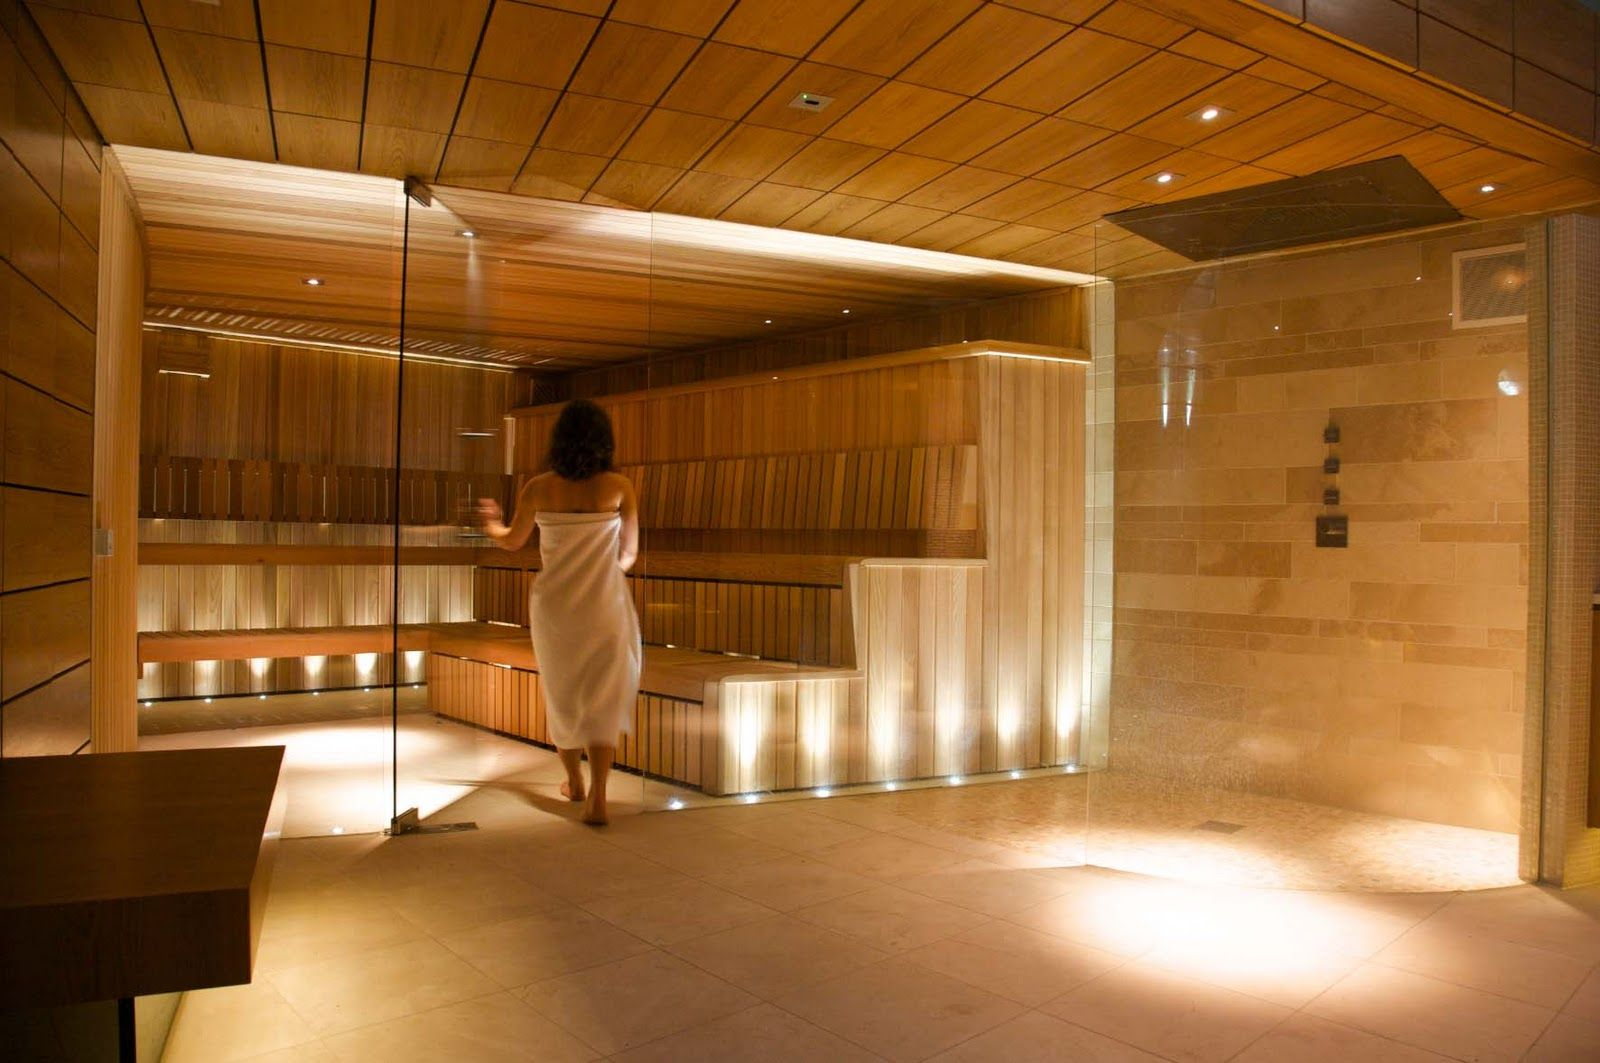 commercial saunas  The steam room and spa areas are